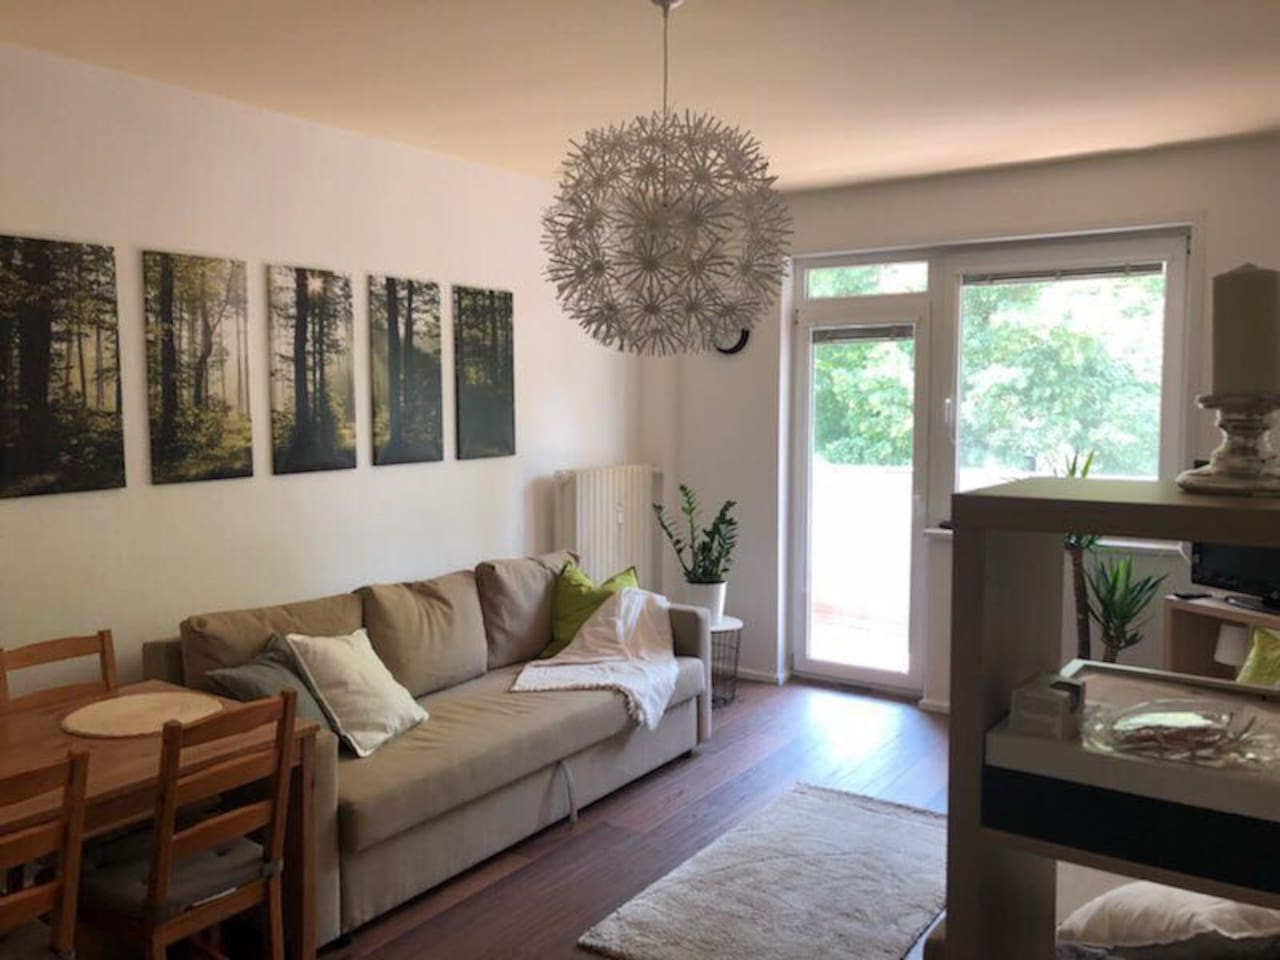 Living room with access to balcony / Wohnzimmer mit Balkon